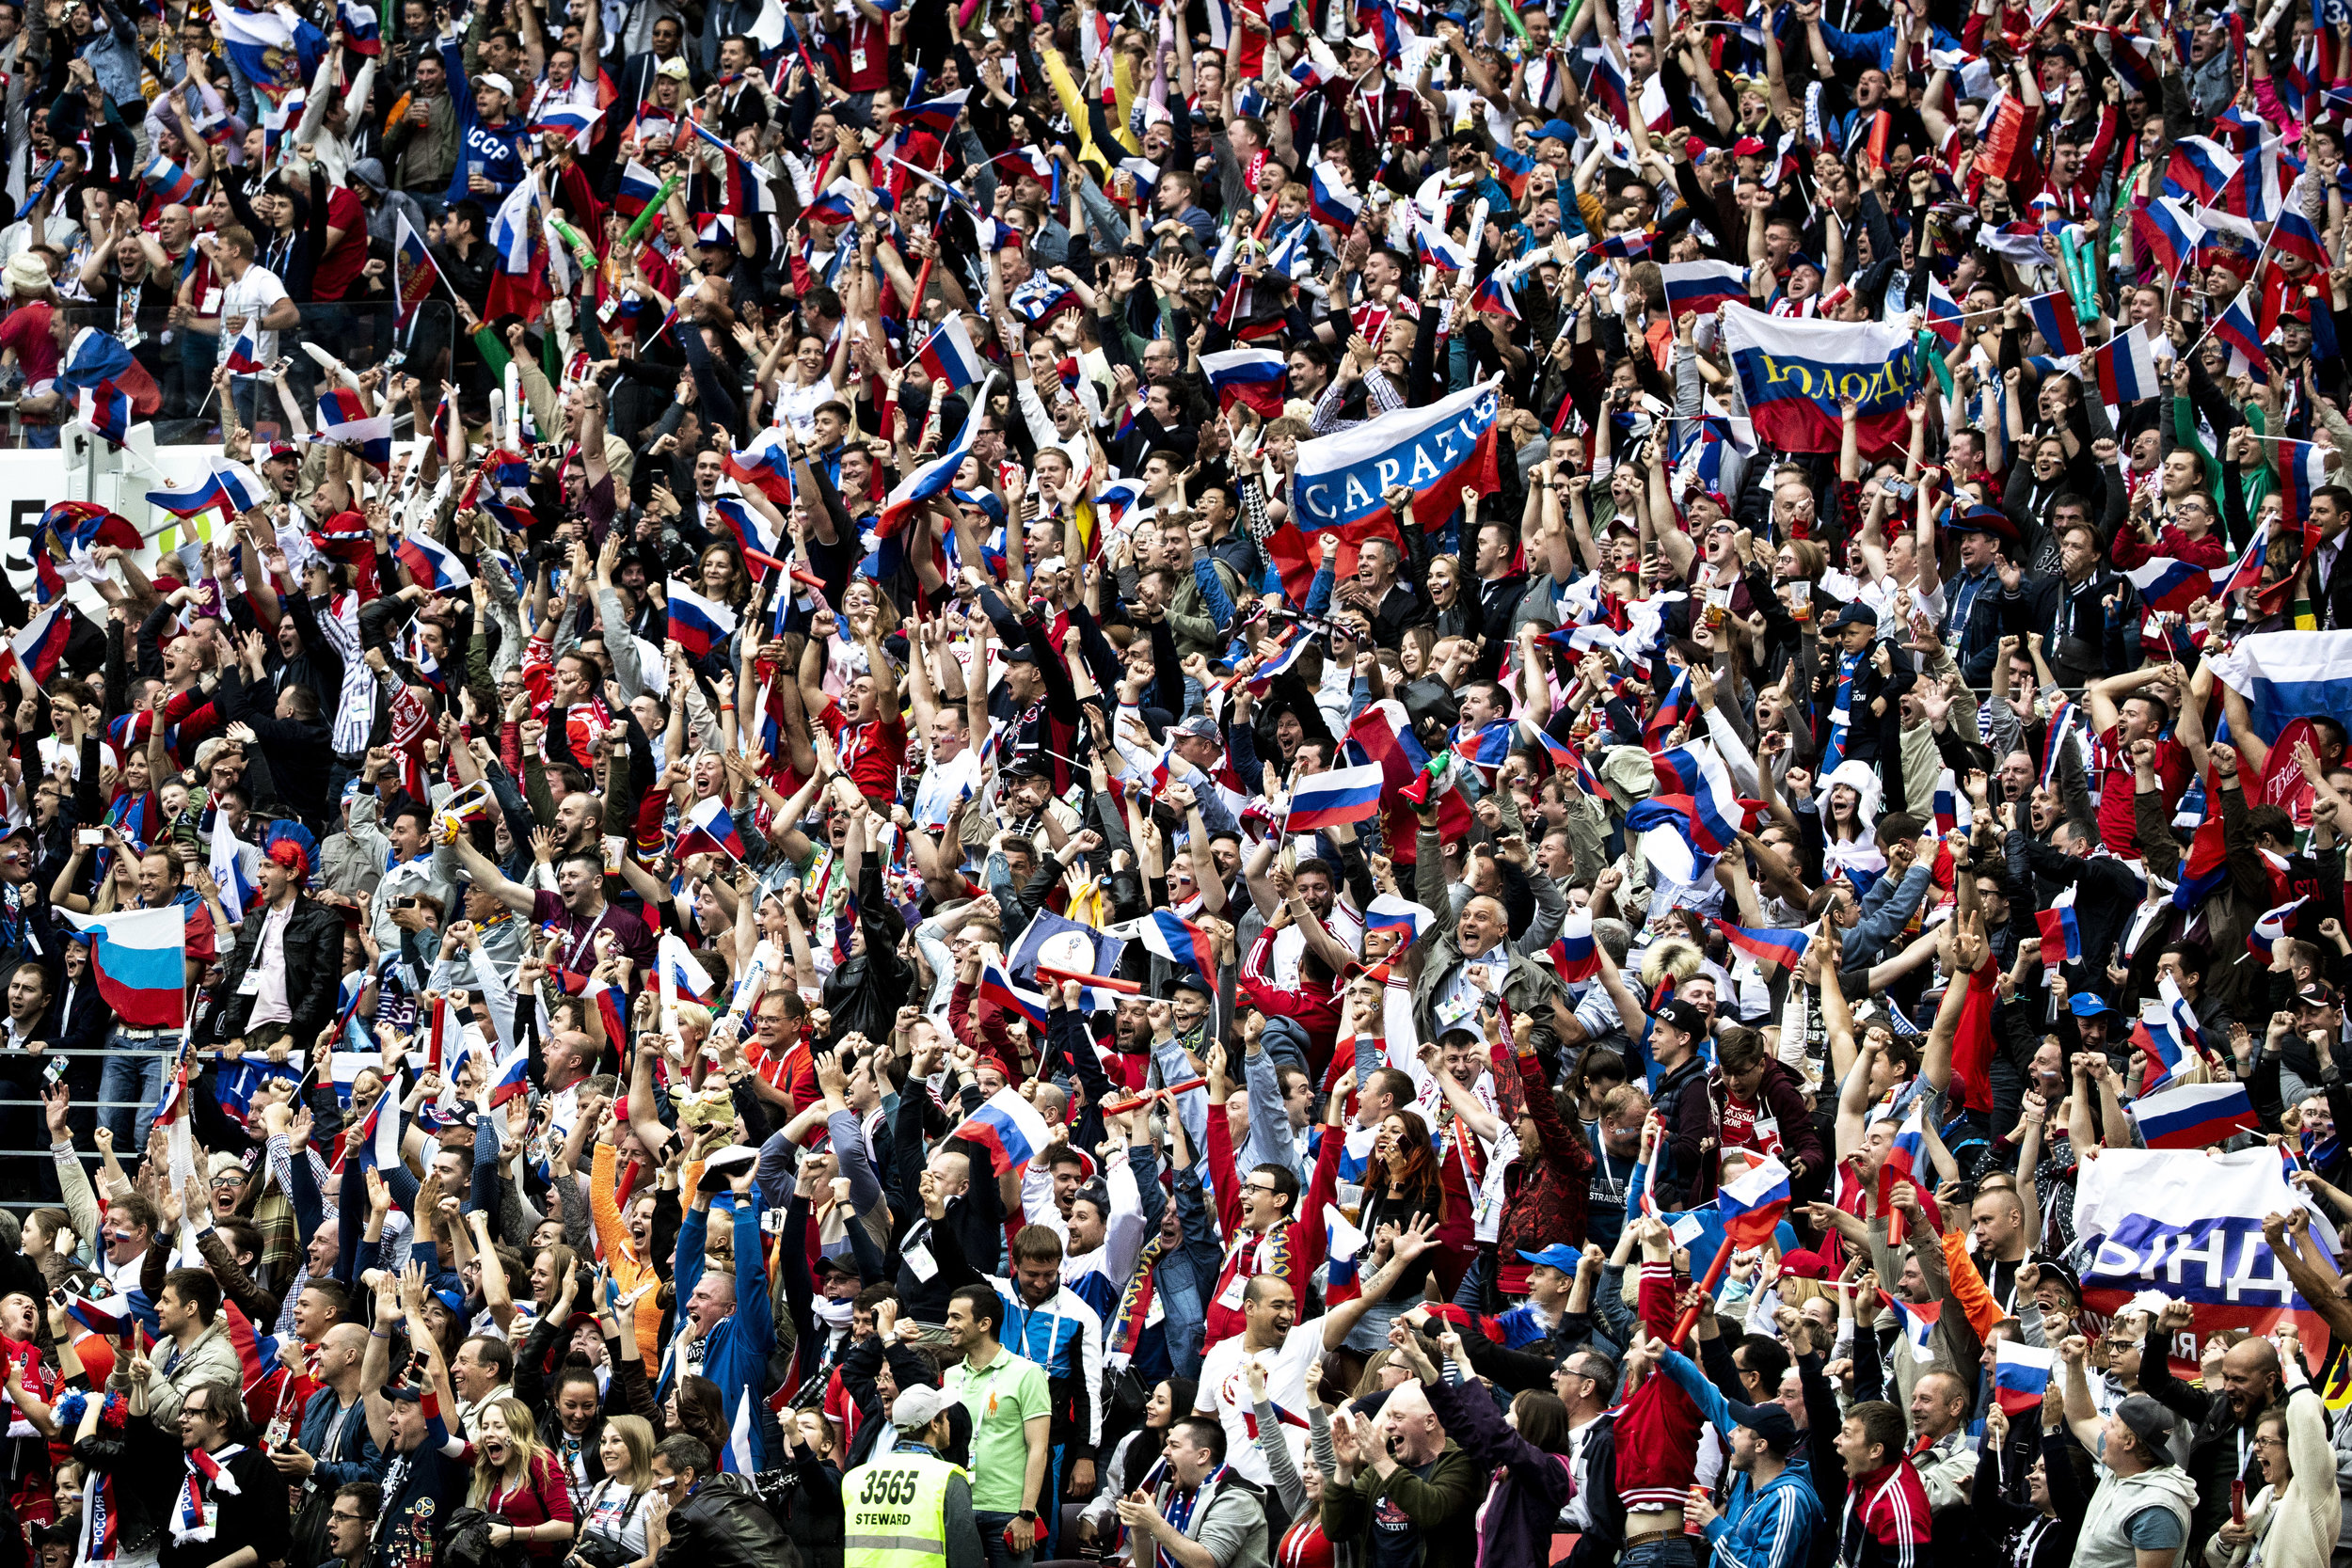 Russian fans celebrate their team's second goal against Saudi Arabia in the World Cup opening game in Moscow